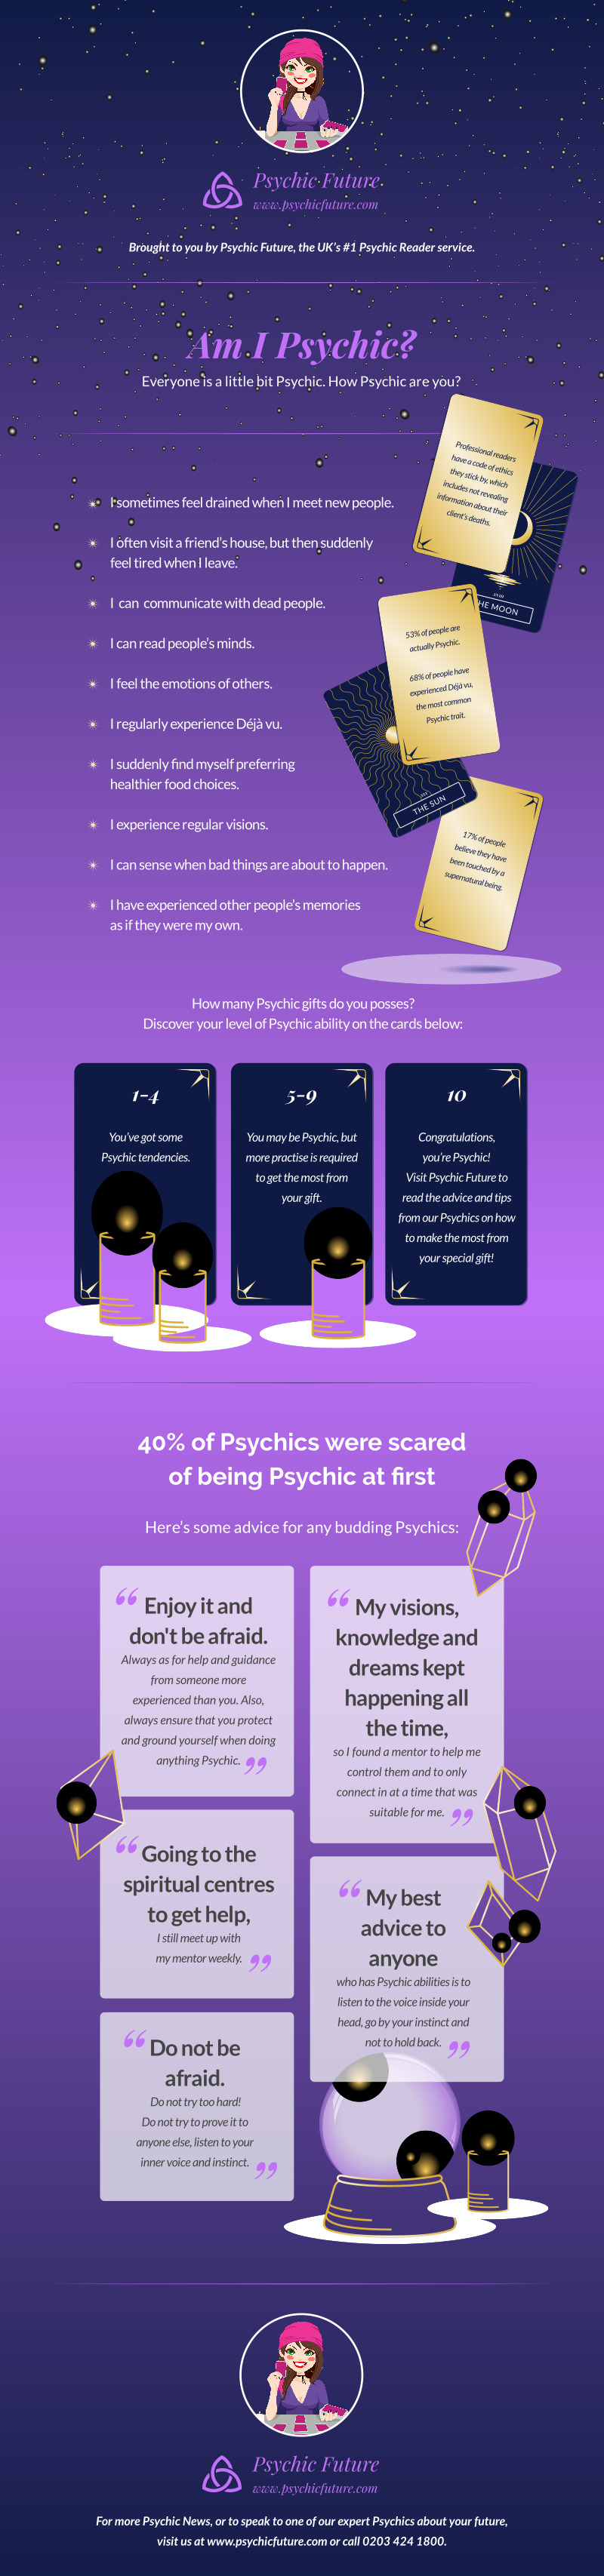 psychic abilities: Pinterest graphic